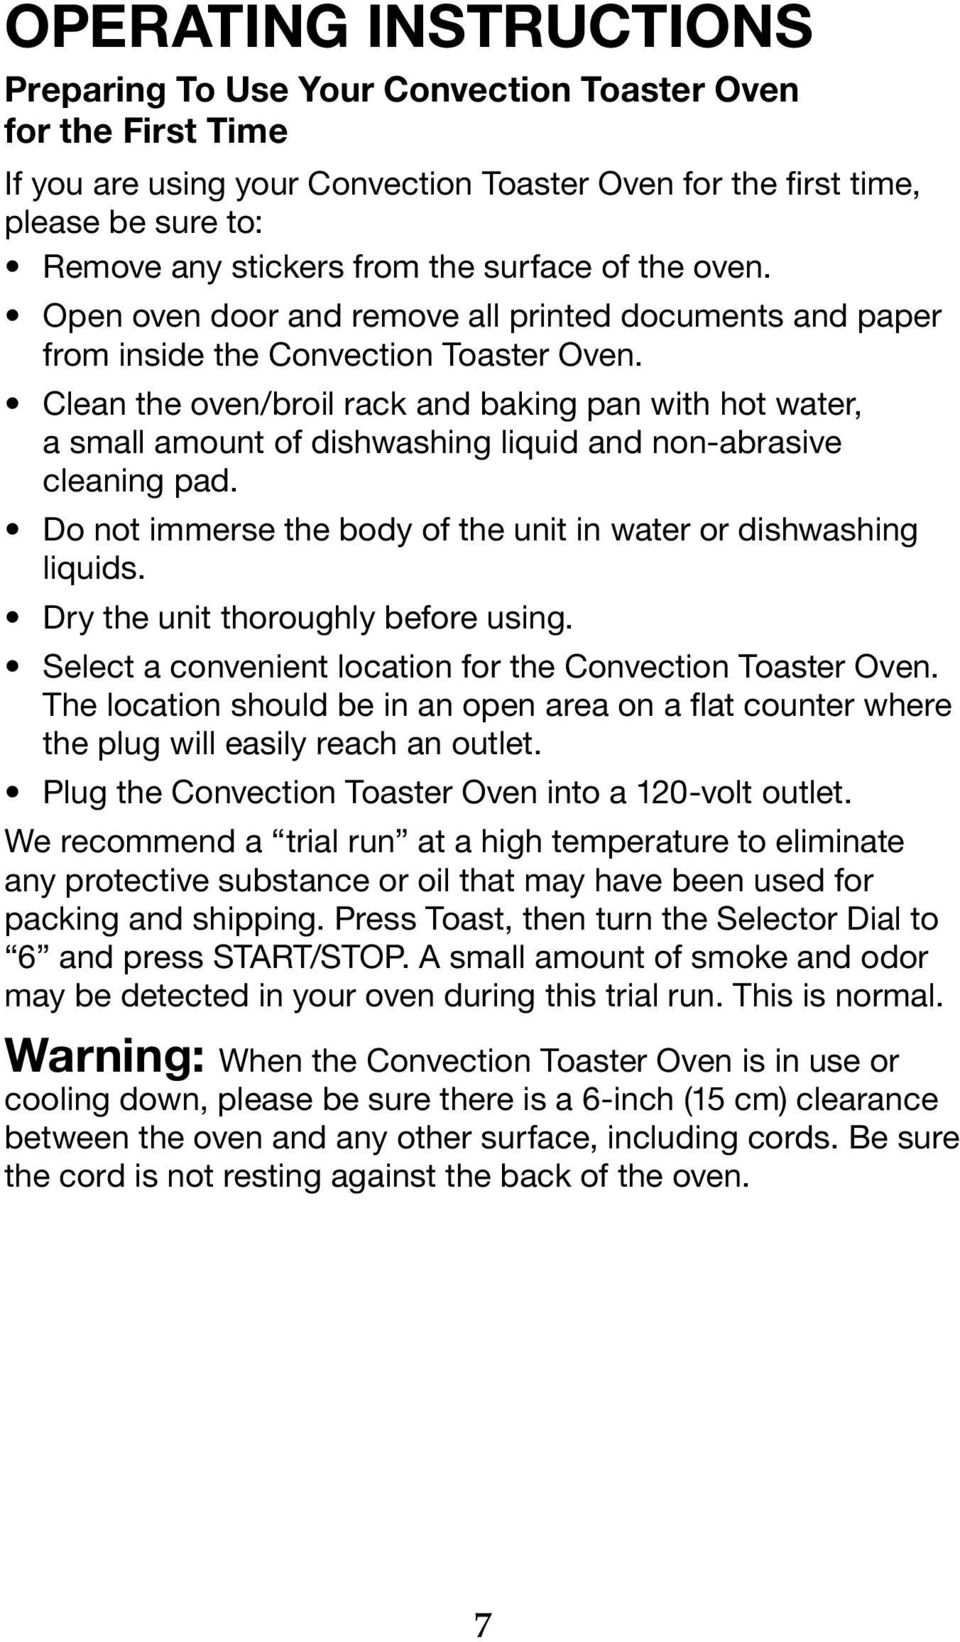 Clean the oven/broil rack and baking pan with hot water, a small amount of dishwashing liquid and non-abrasive cleaning pad. Do not immerse the body of the unit in water or dishwashing liquids.